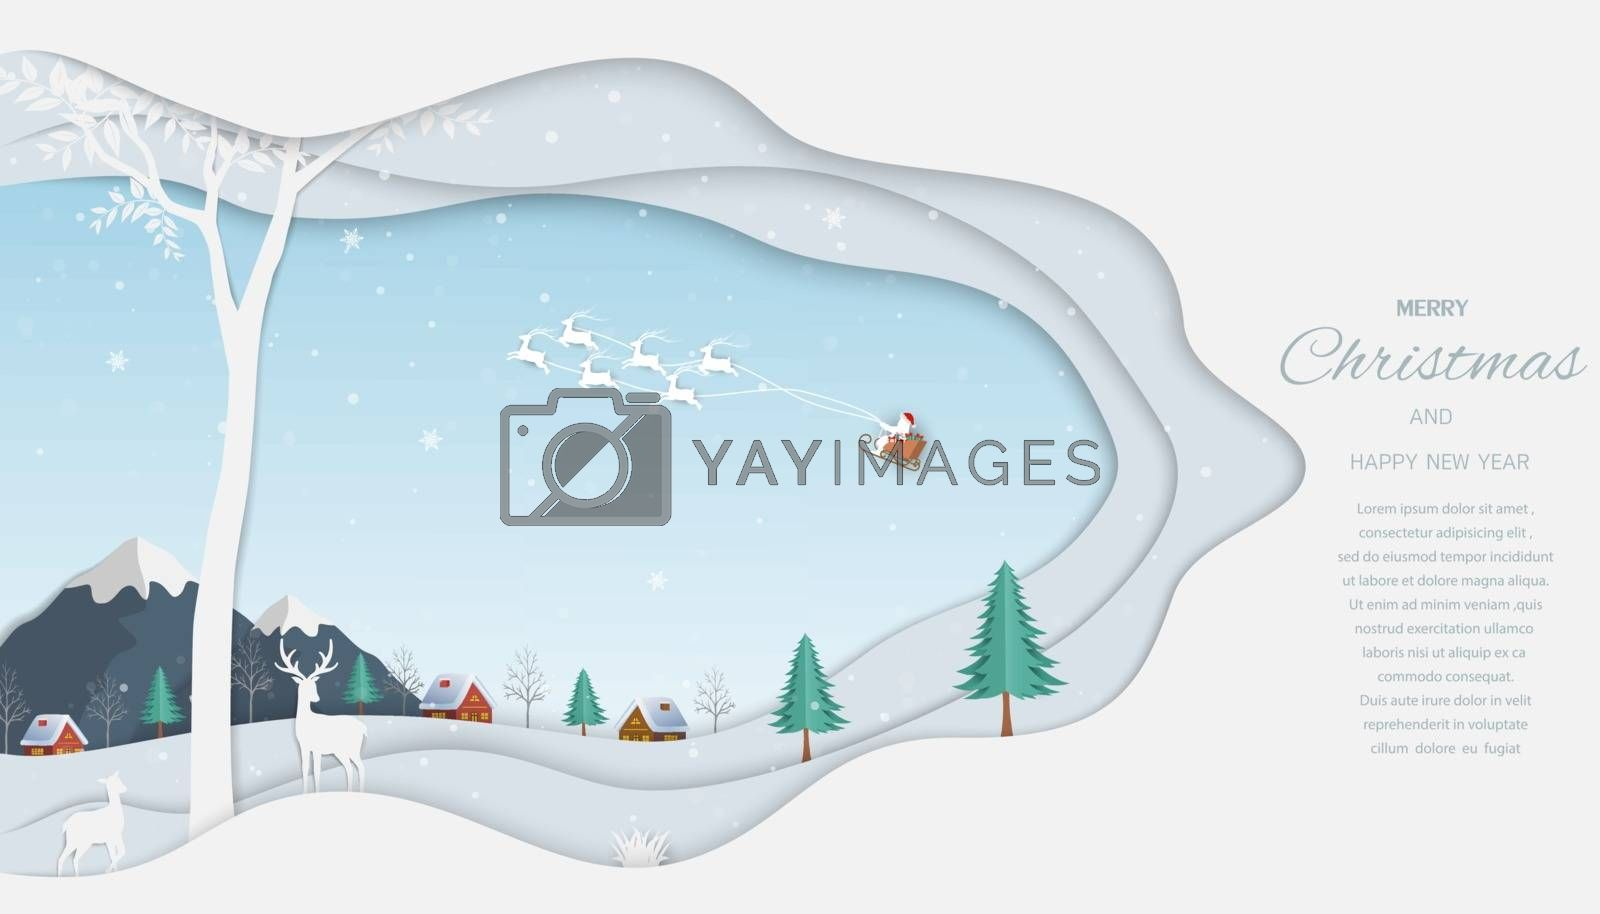 Merry Christmas and Happy new year greeting card,reindeer with Santa Claus on winter background by PIMPAKA